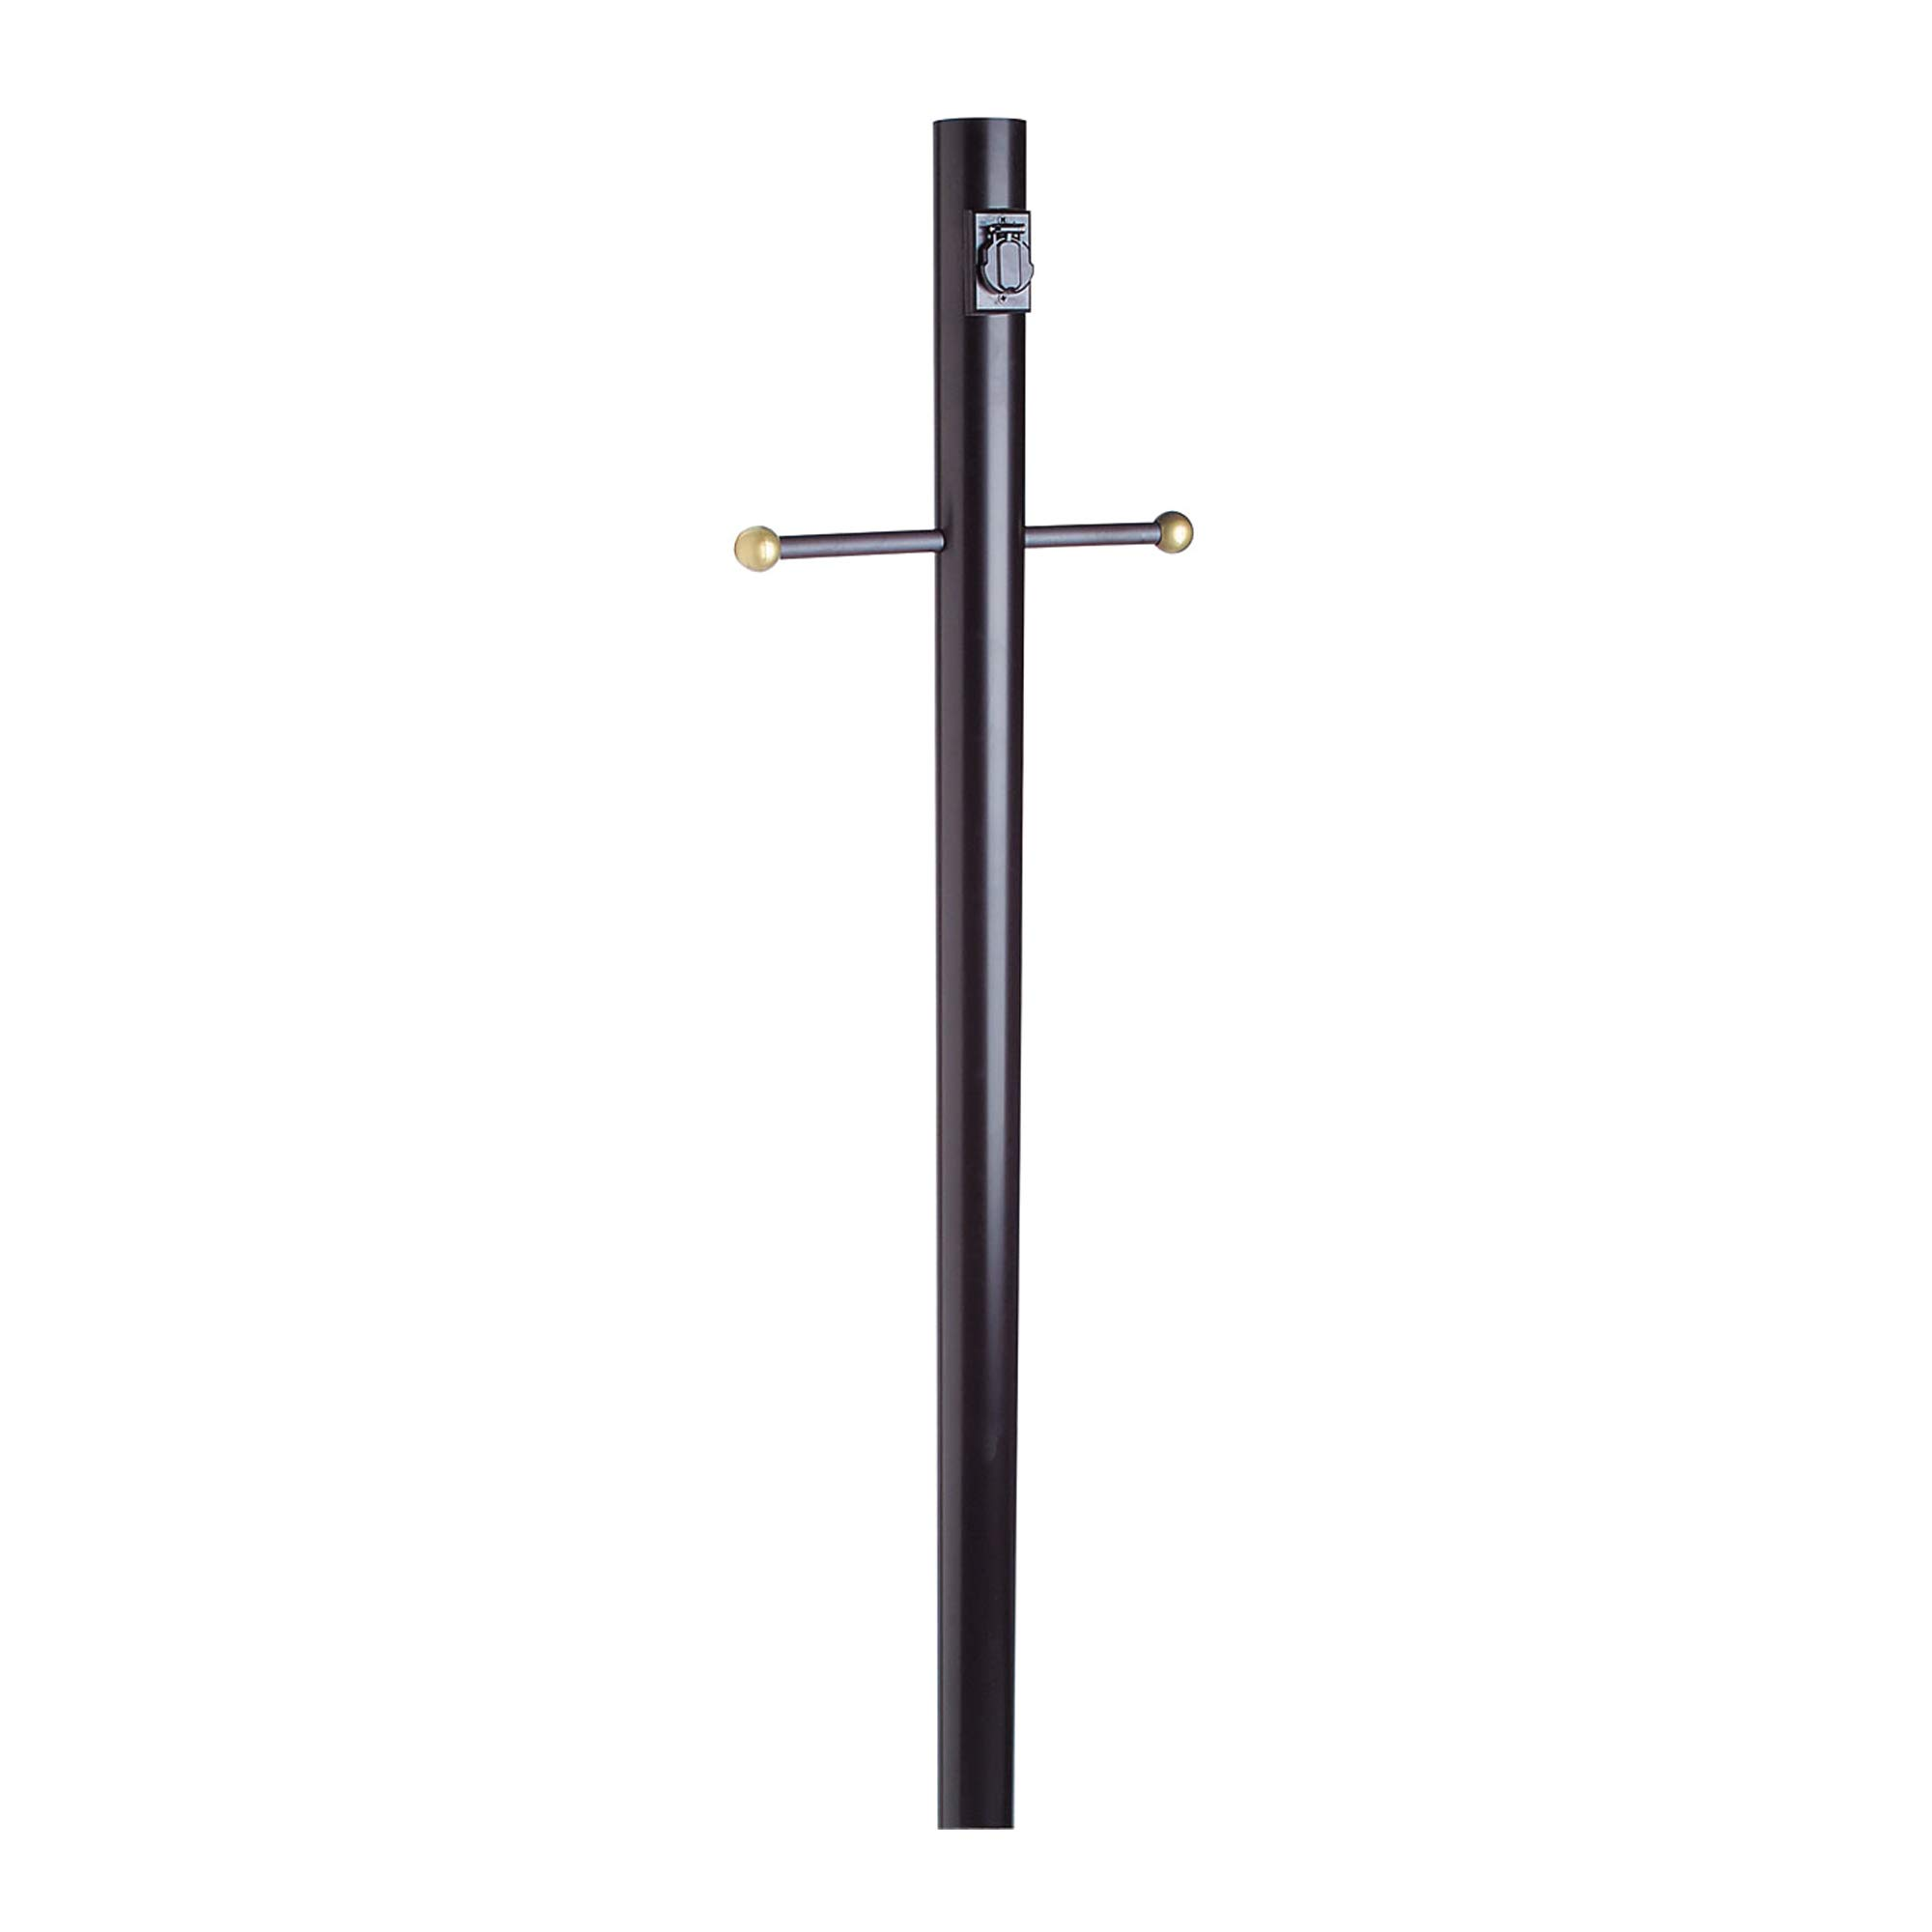 Design House 579714 Outdoor Lamp Post with Cross Arm and Outlet, Black